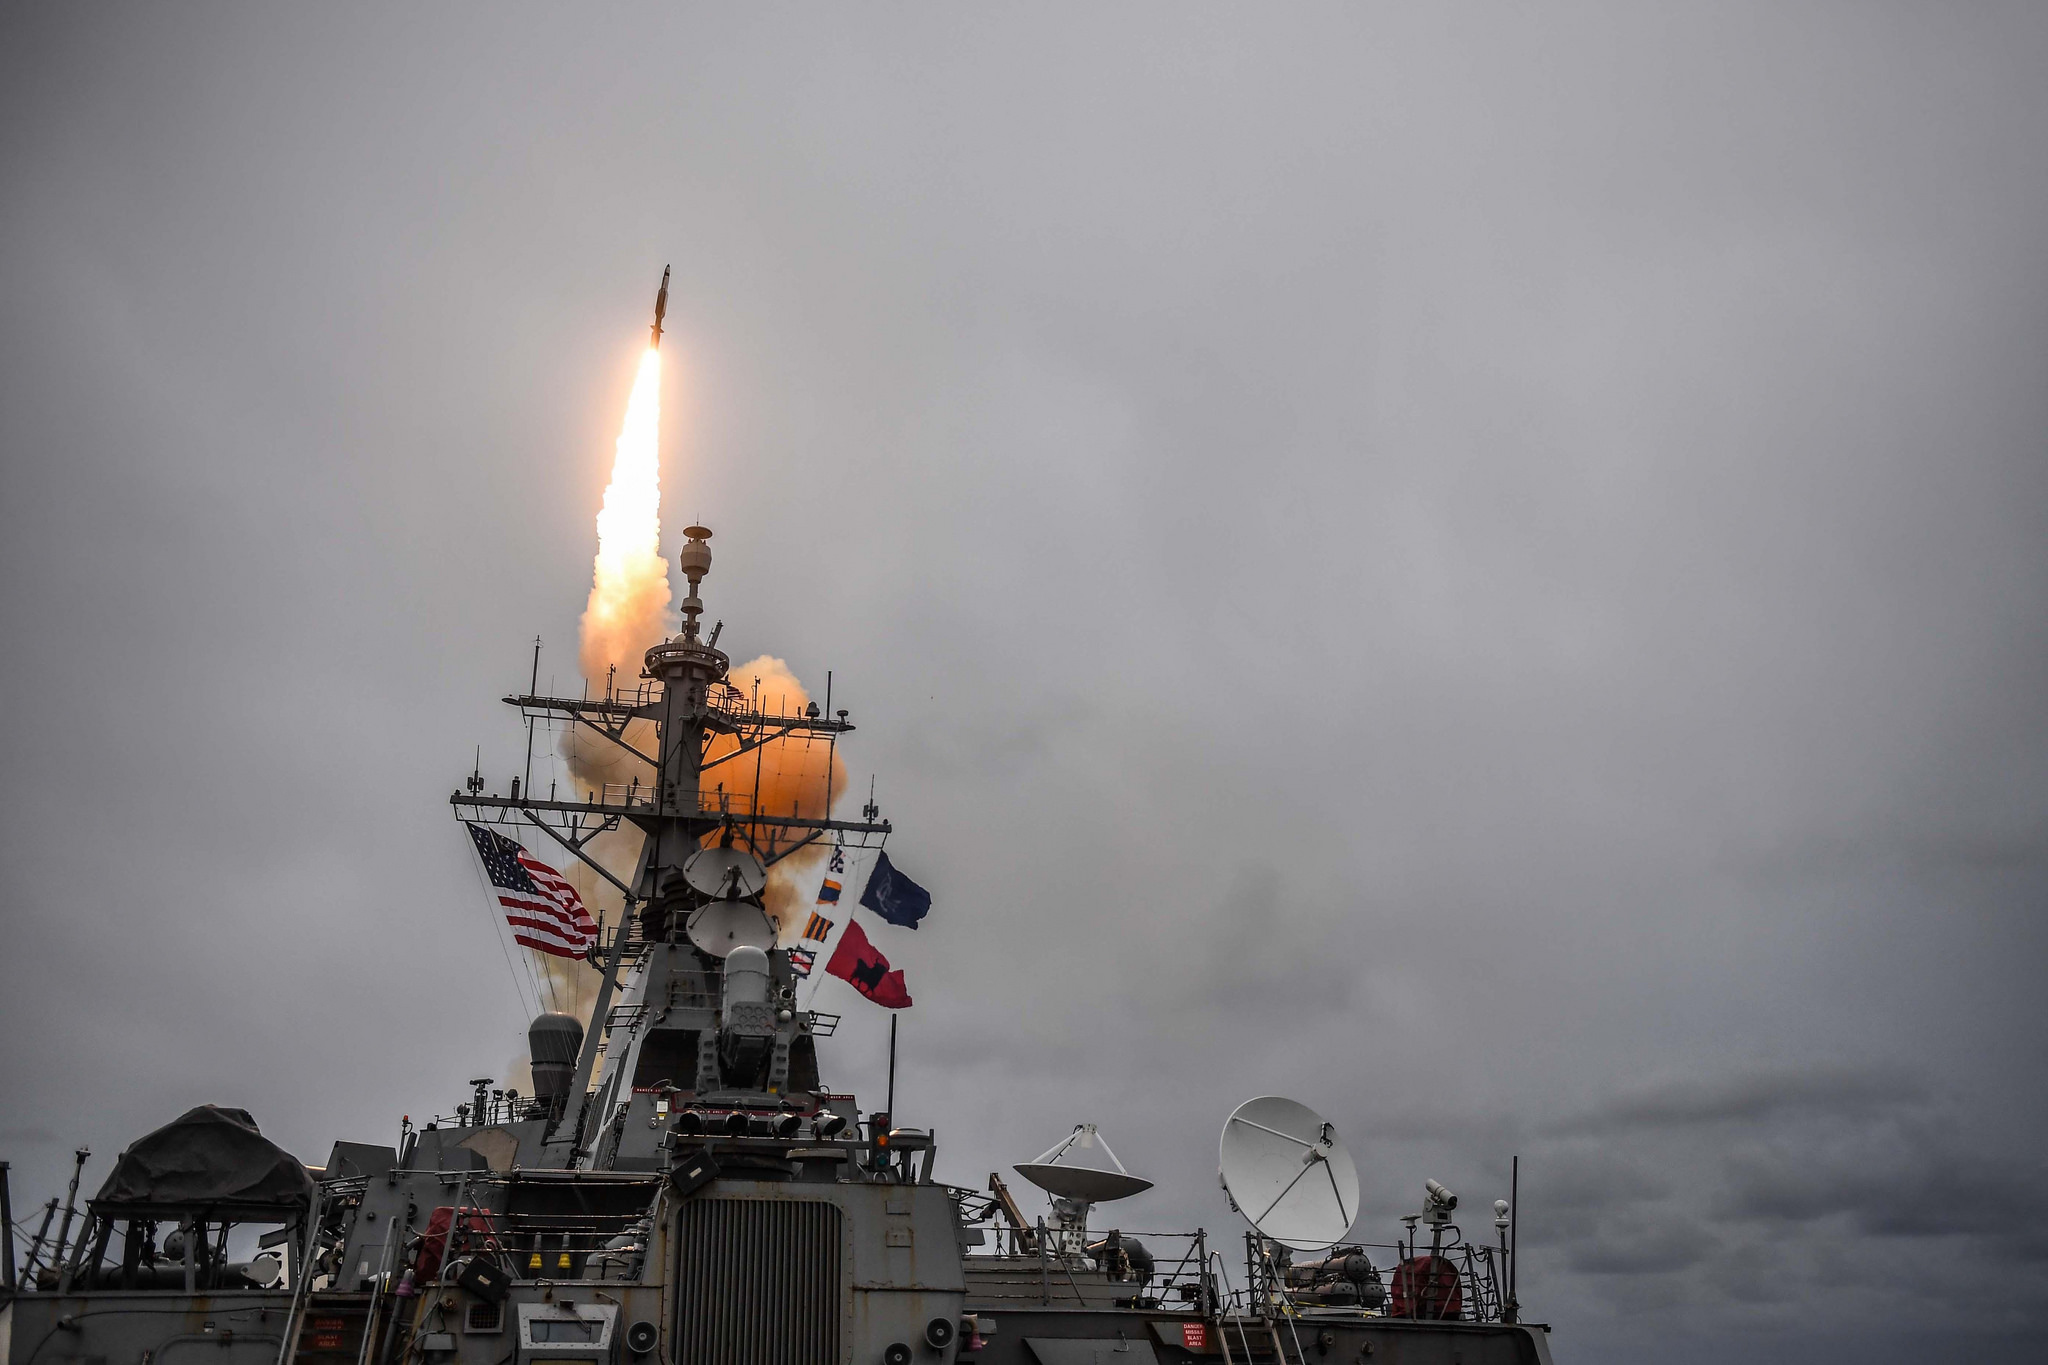 The Arleigh Burke-class guided-missile destroyer USS Donald Cook (DDG 75) fires a standard missile 3 during exercise Formidable Shield 2017. (Mass Communication Specialist 1st Class Theron J. Godbold)